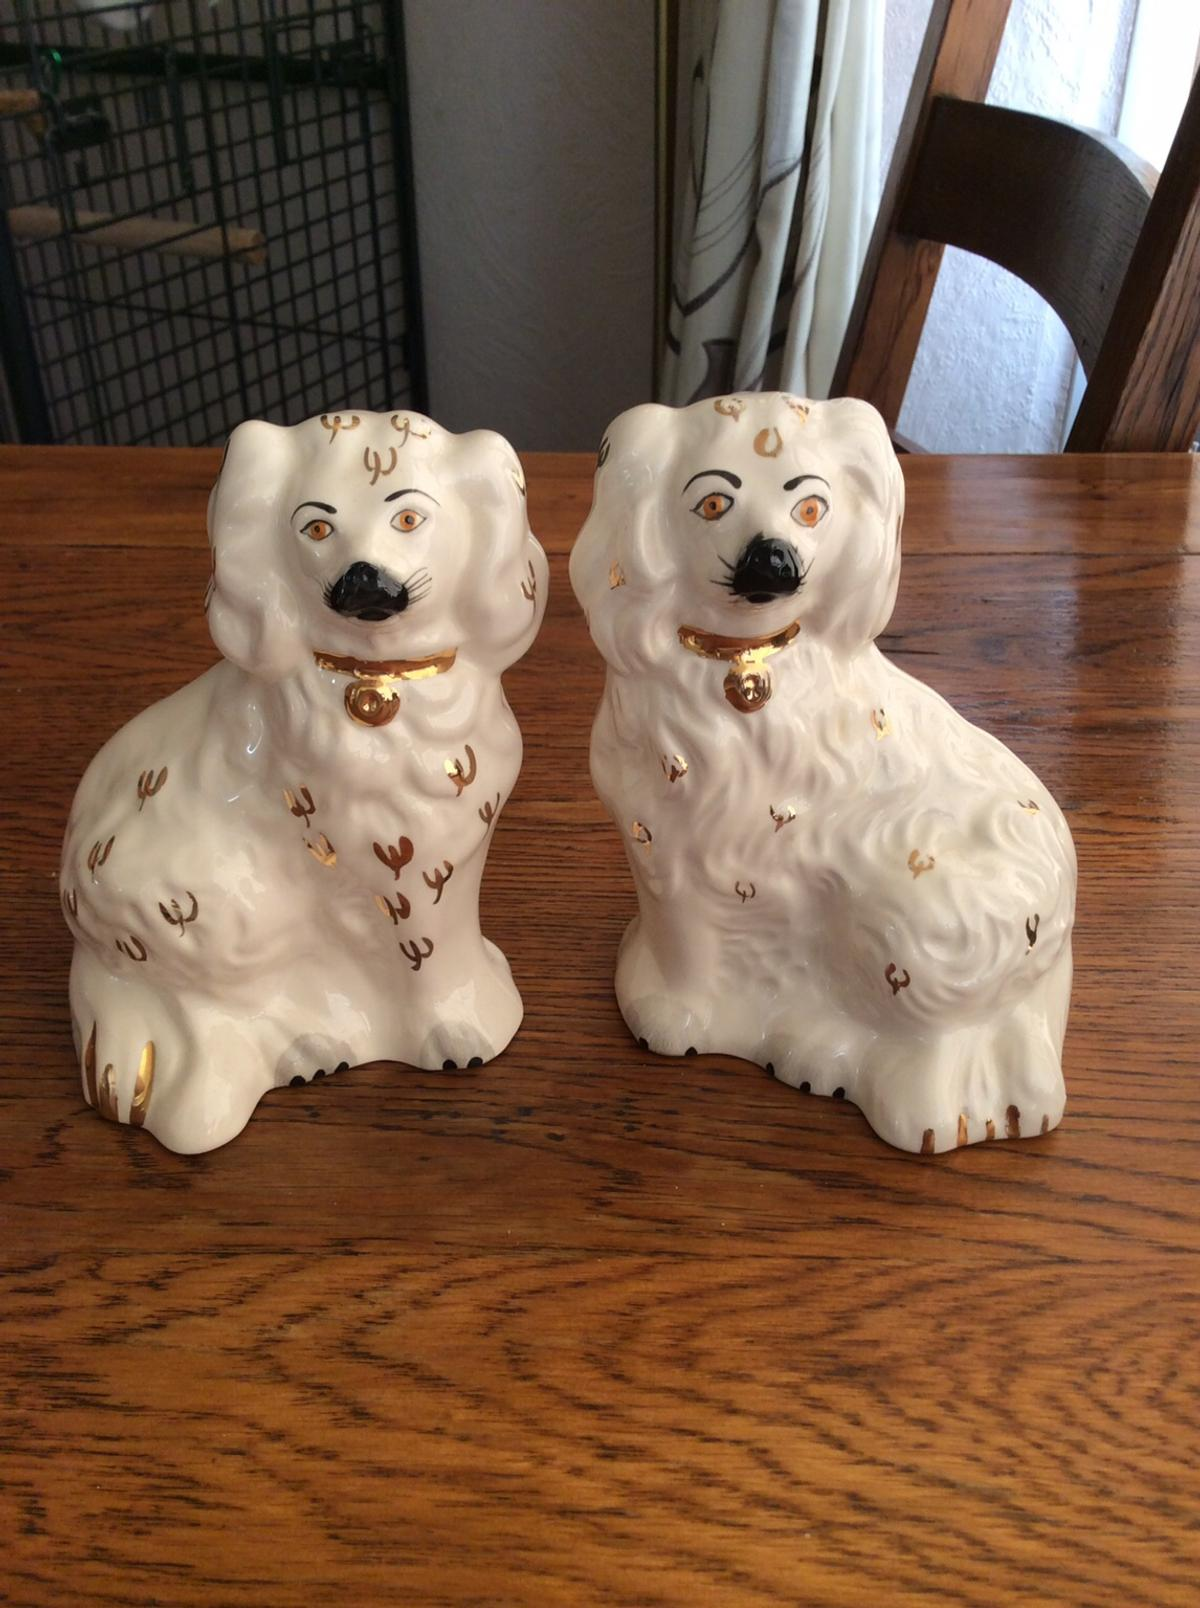 Small pair of beswick dogs excellent condition £10 the pair collection only